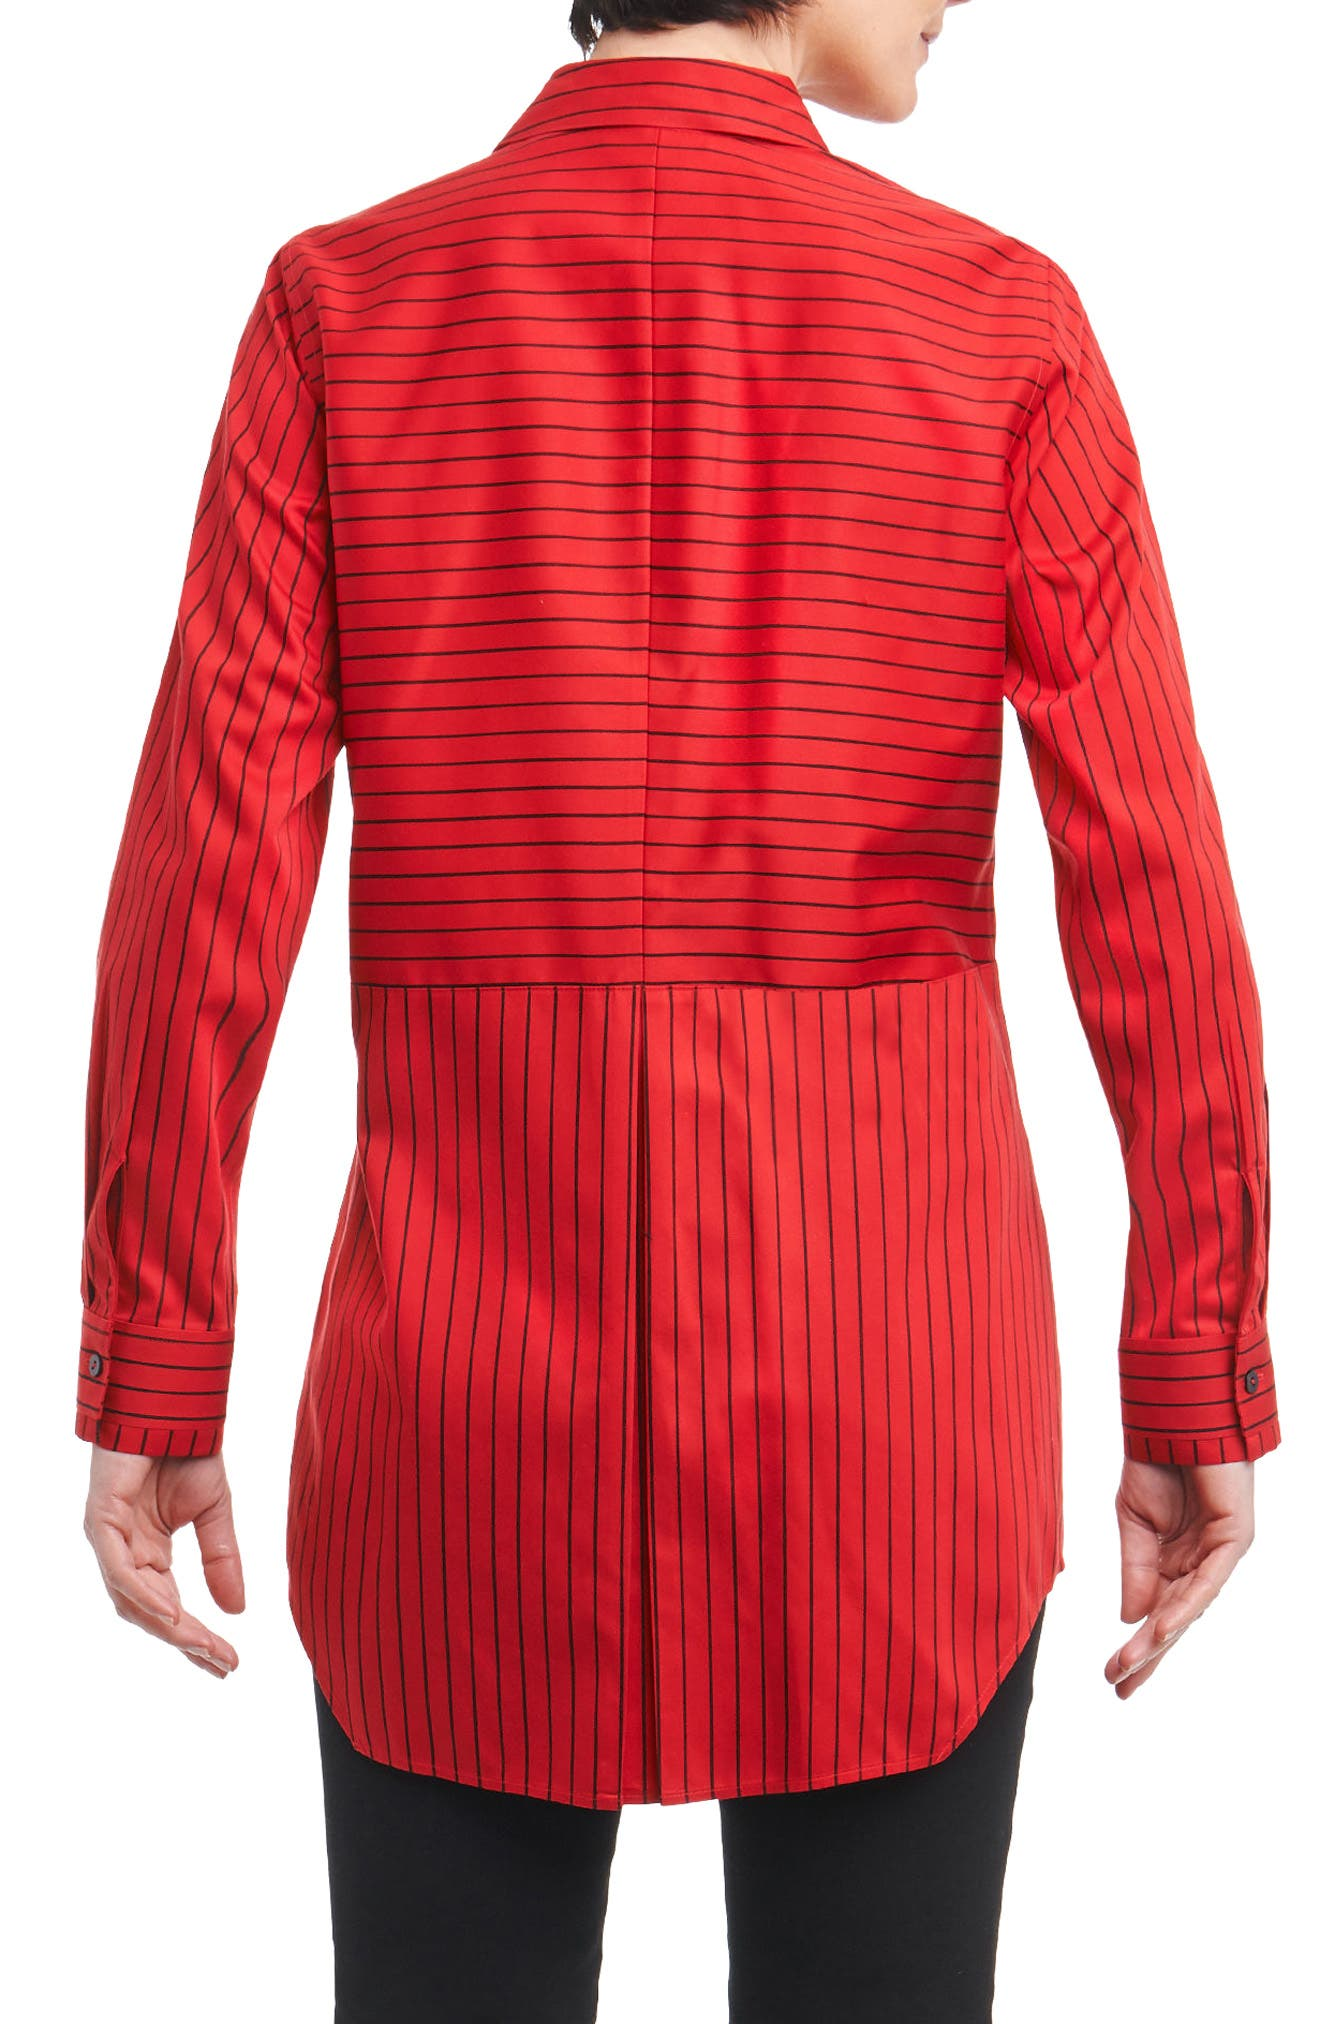 Gina in Holiday Stripe Shirt,                             Alternate thumbnail 2, color,                             625